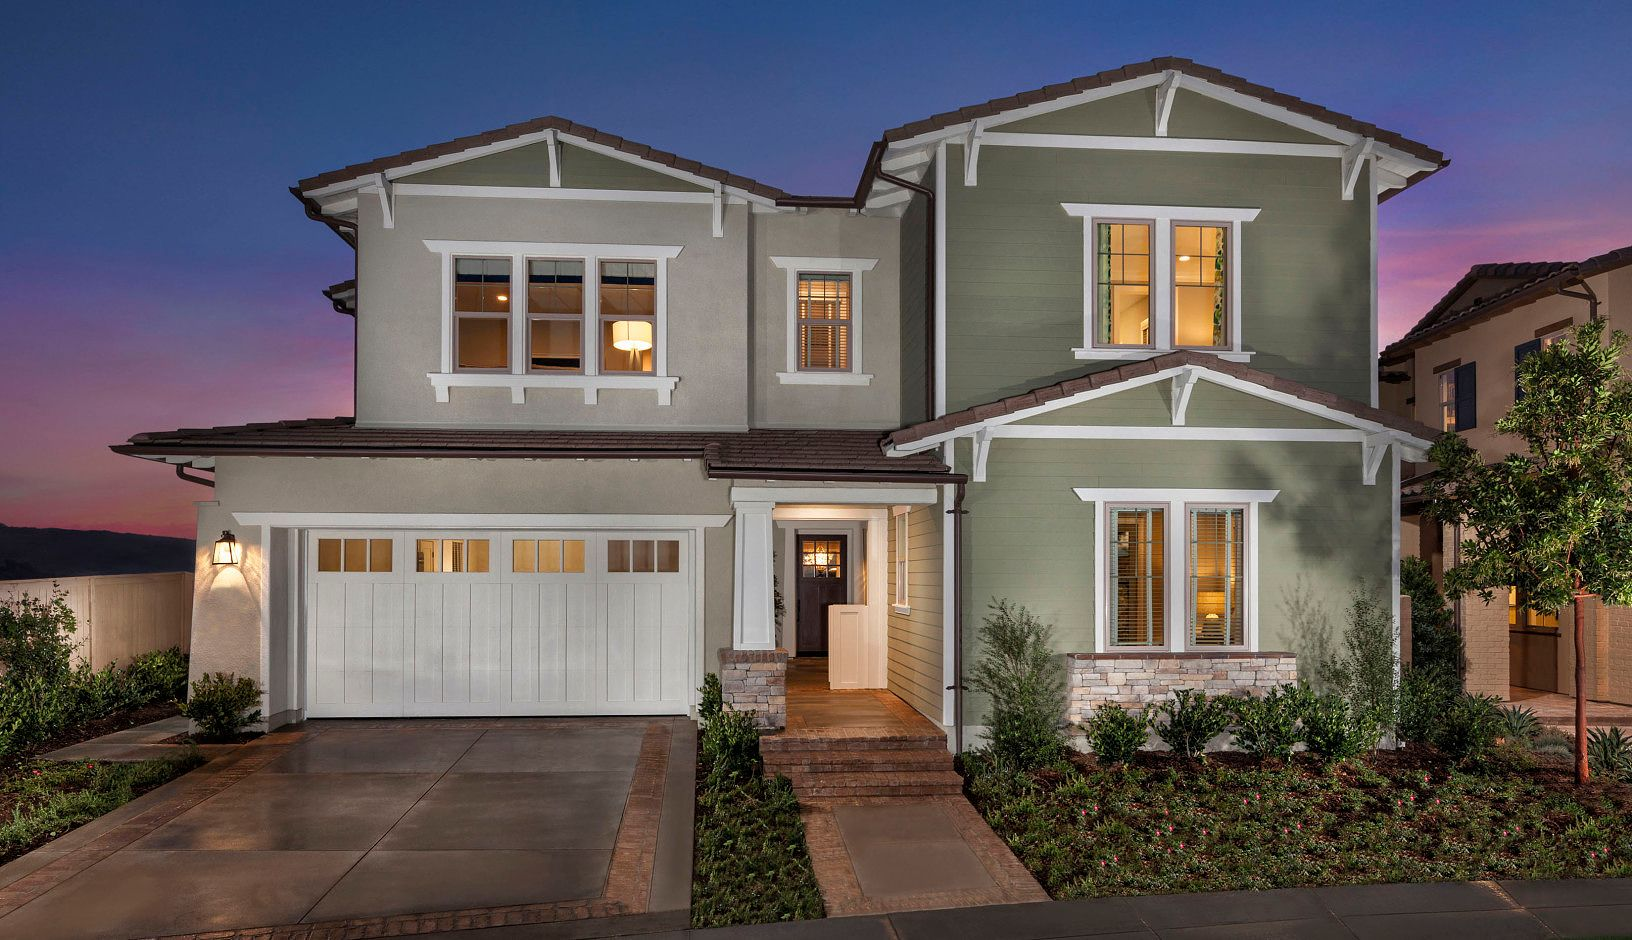 Single Family for Sale at Aubergine At Esencia - Residence 3 8 Cadencia Street Ladera Ranch, California 92694 United States